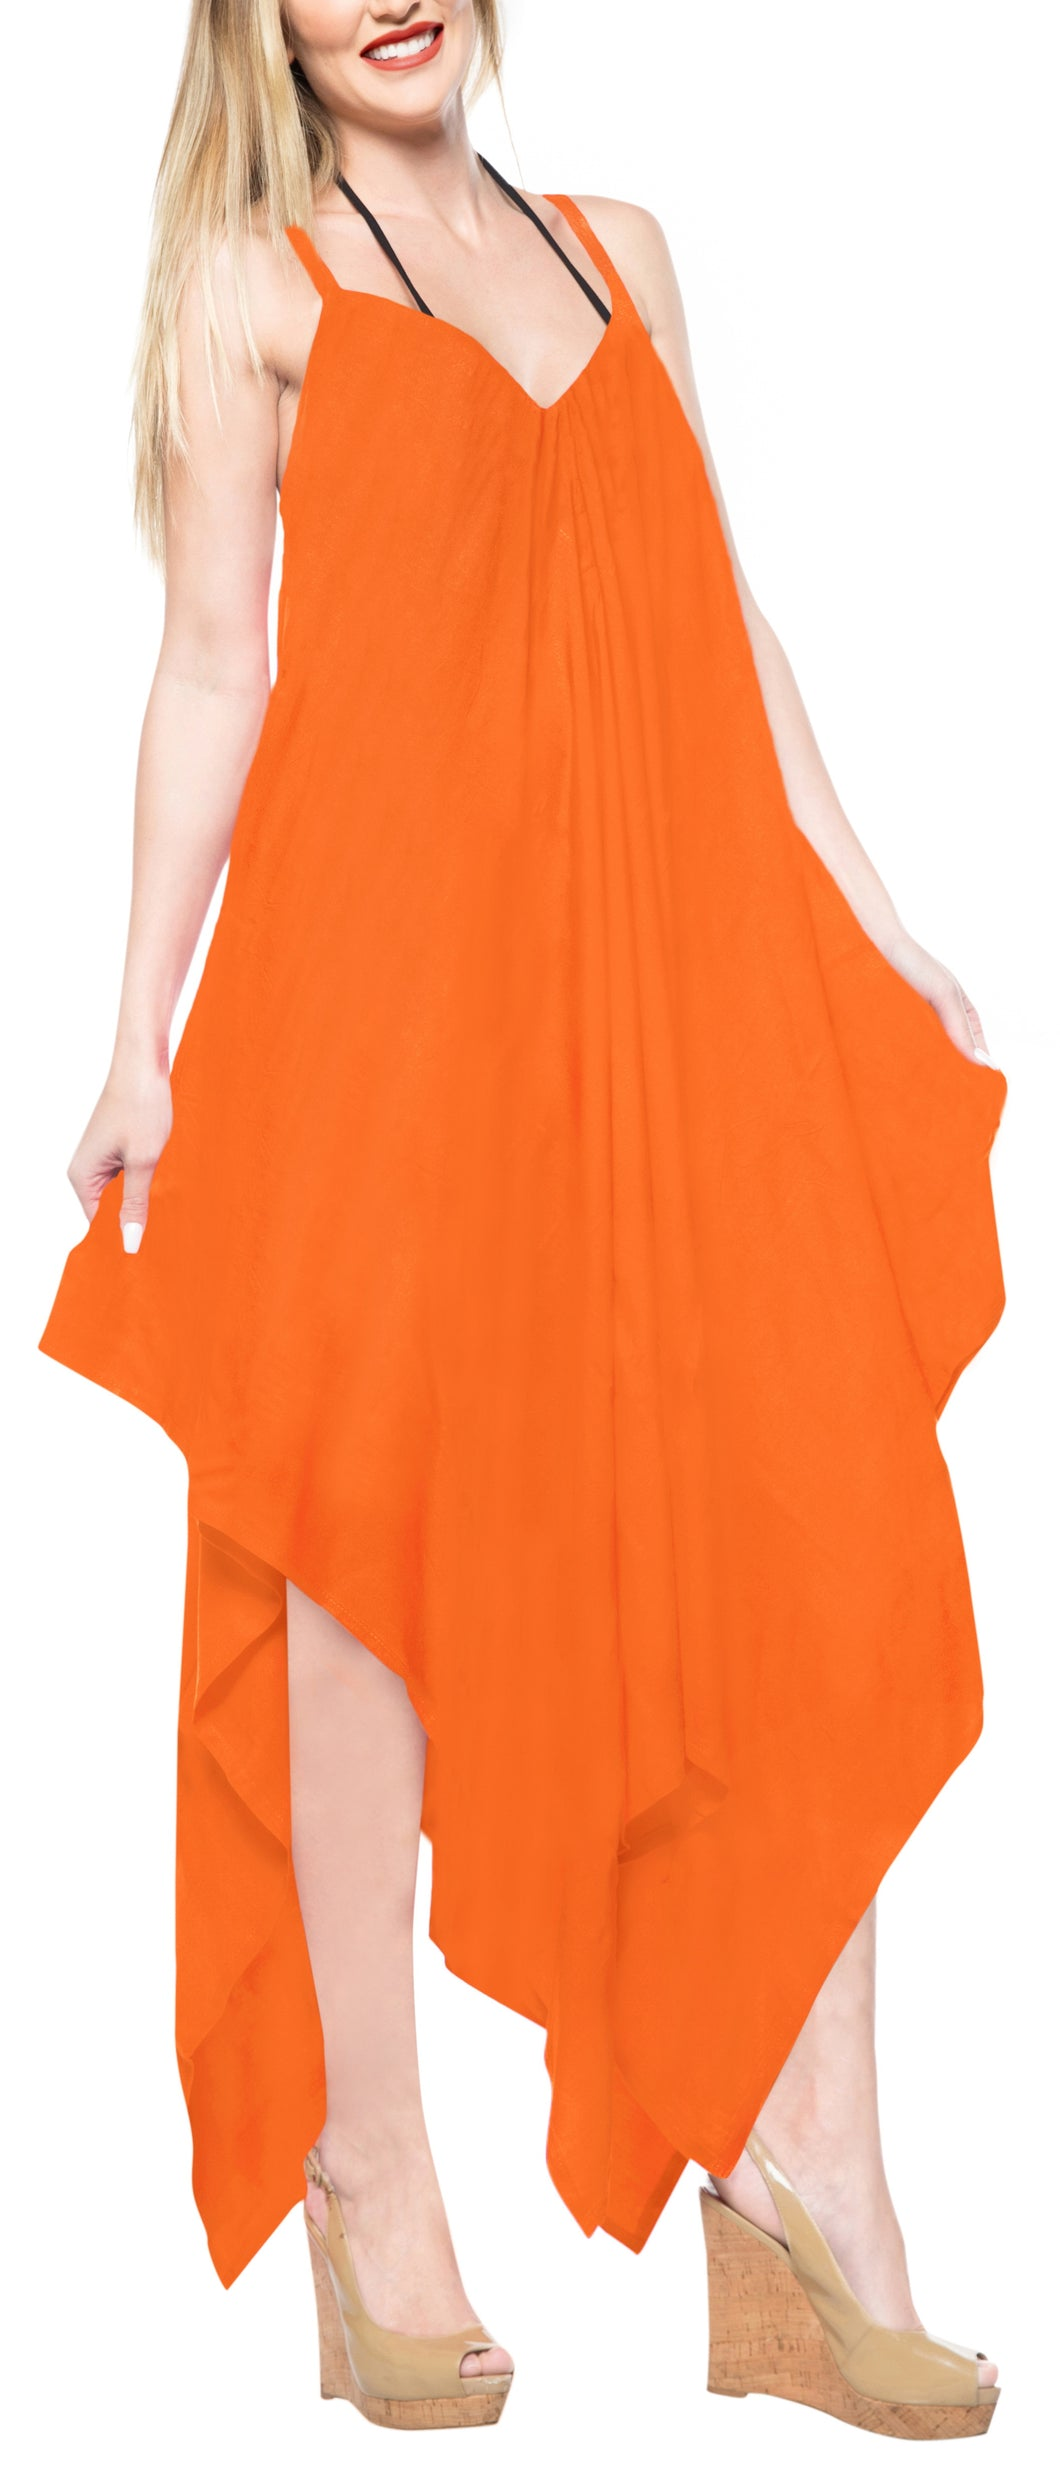 la-leela-beach-dress-solid-cruise-length-knee-halter-top-osfm-14-16-orange_3426